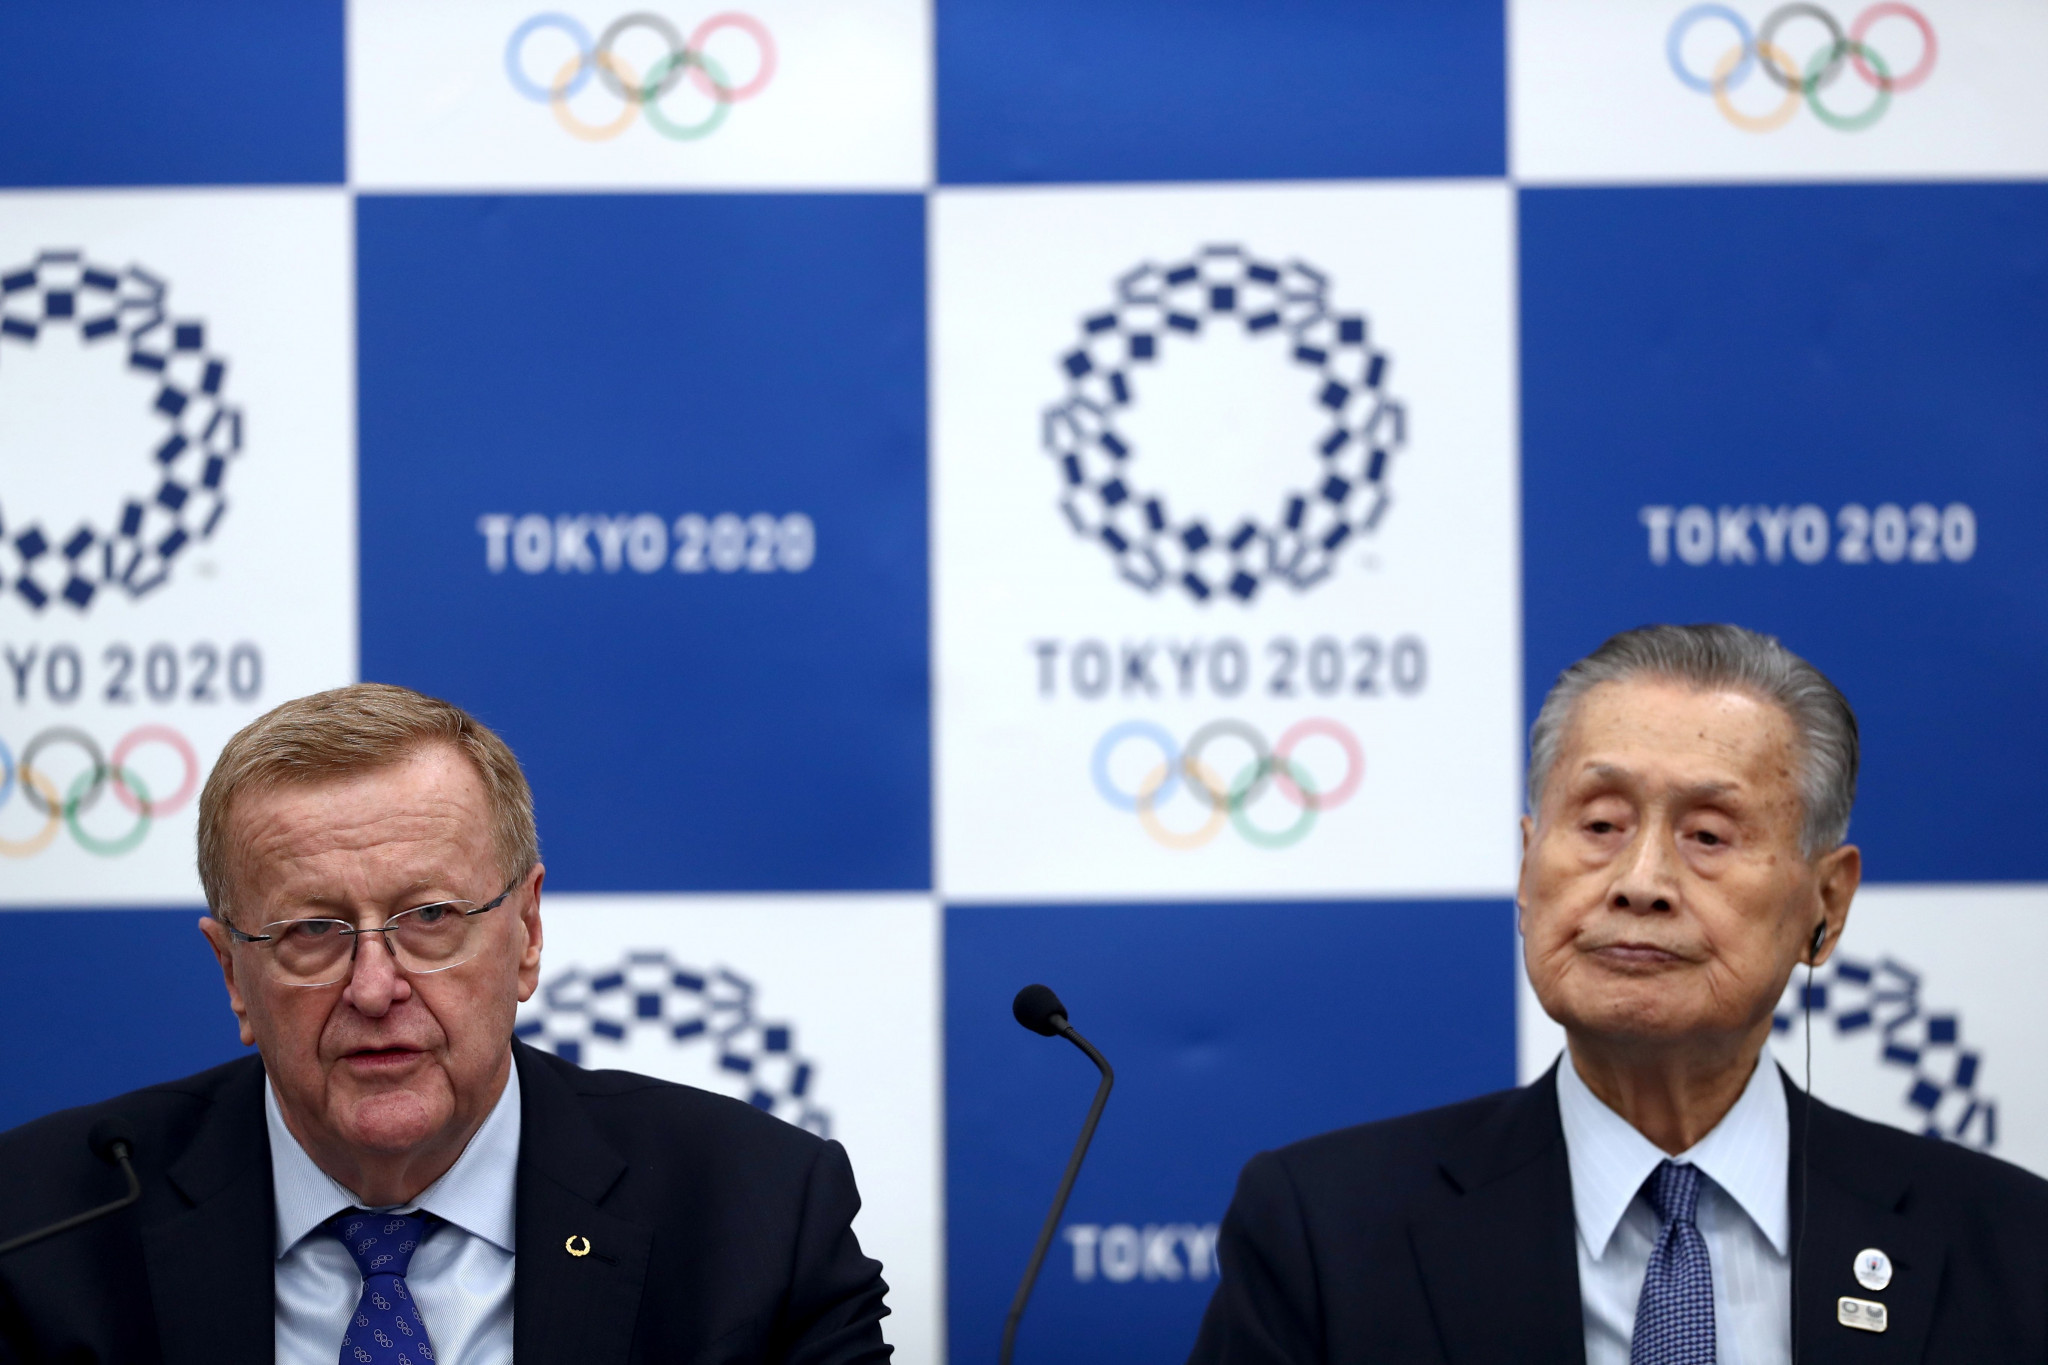 Tickets for the marathon will not be available with further details of its move to Sapporo to be decided before they can be released to the Japanese public ©Getty Images